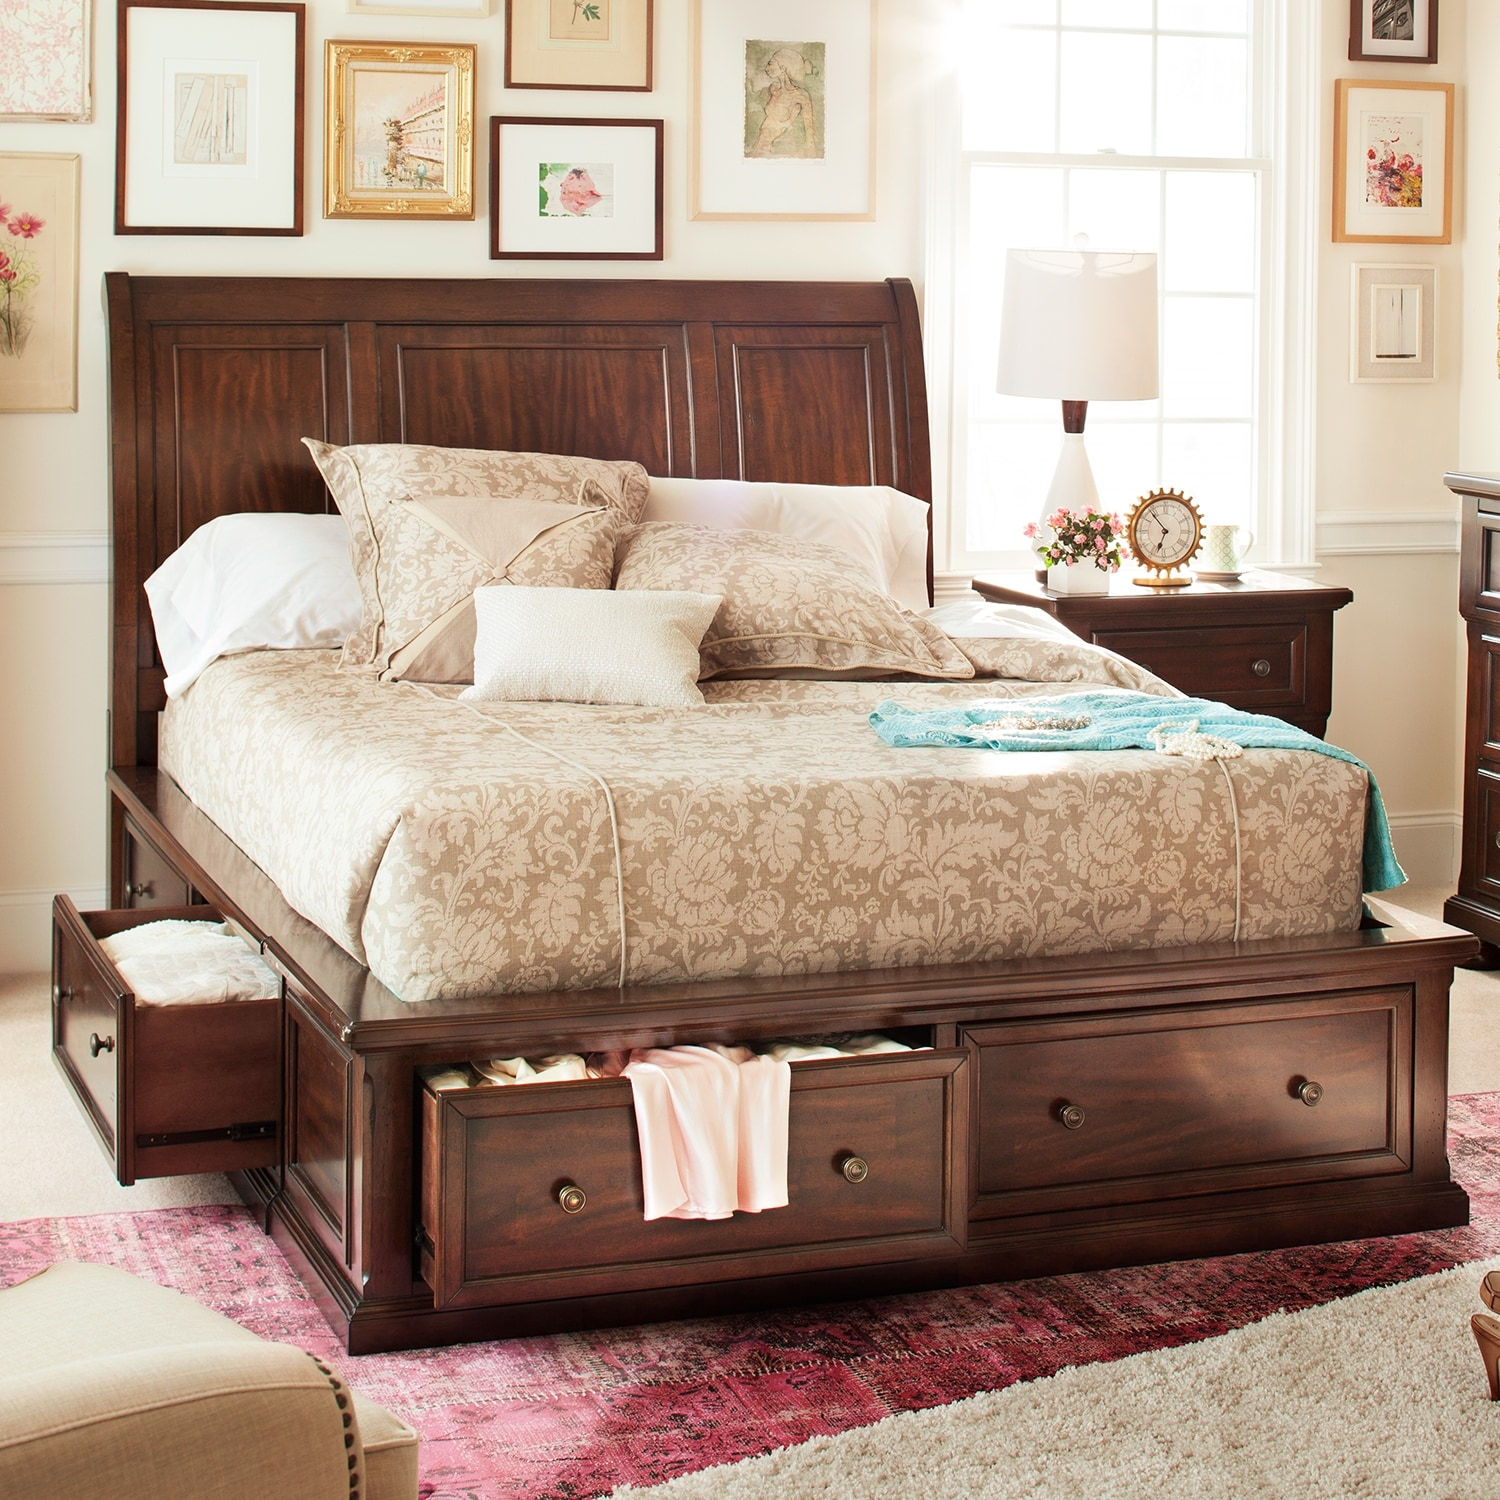 Hanover Queen Storage Bed - Cherry | American Signature Furniture